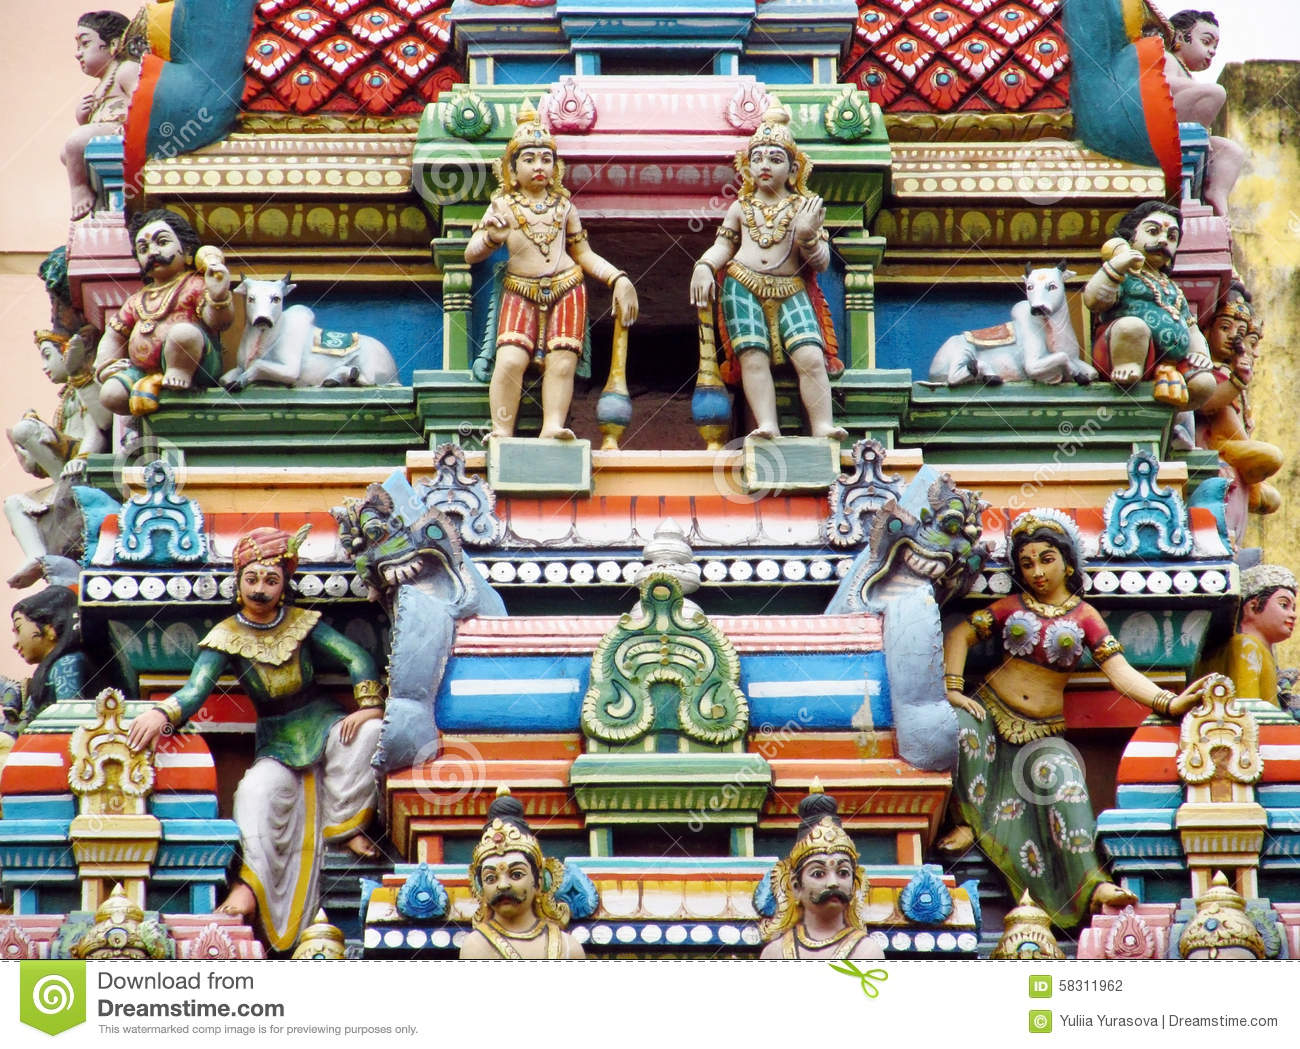 Hindu colorful statues in India